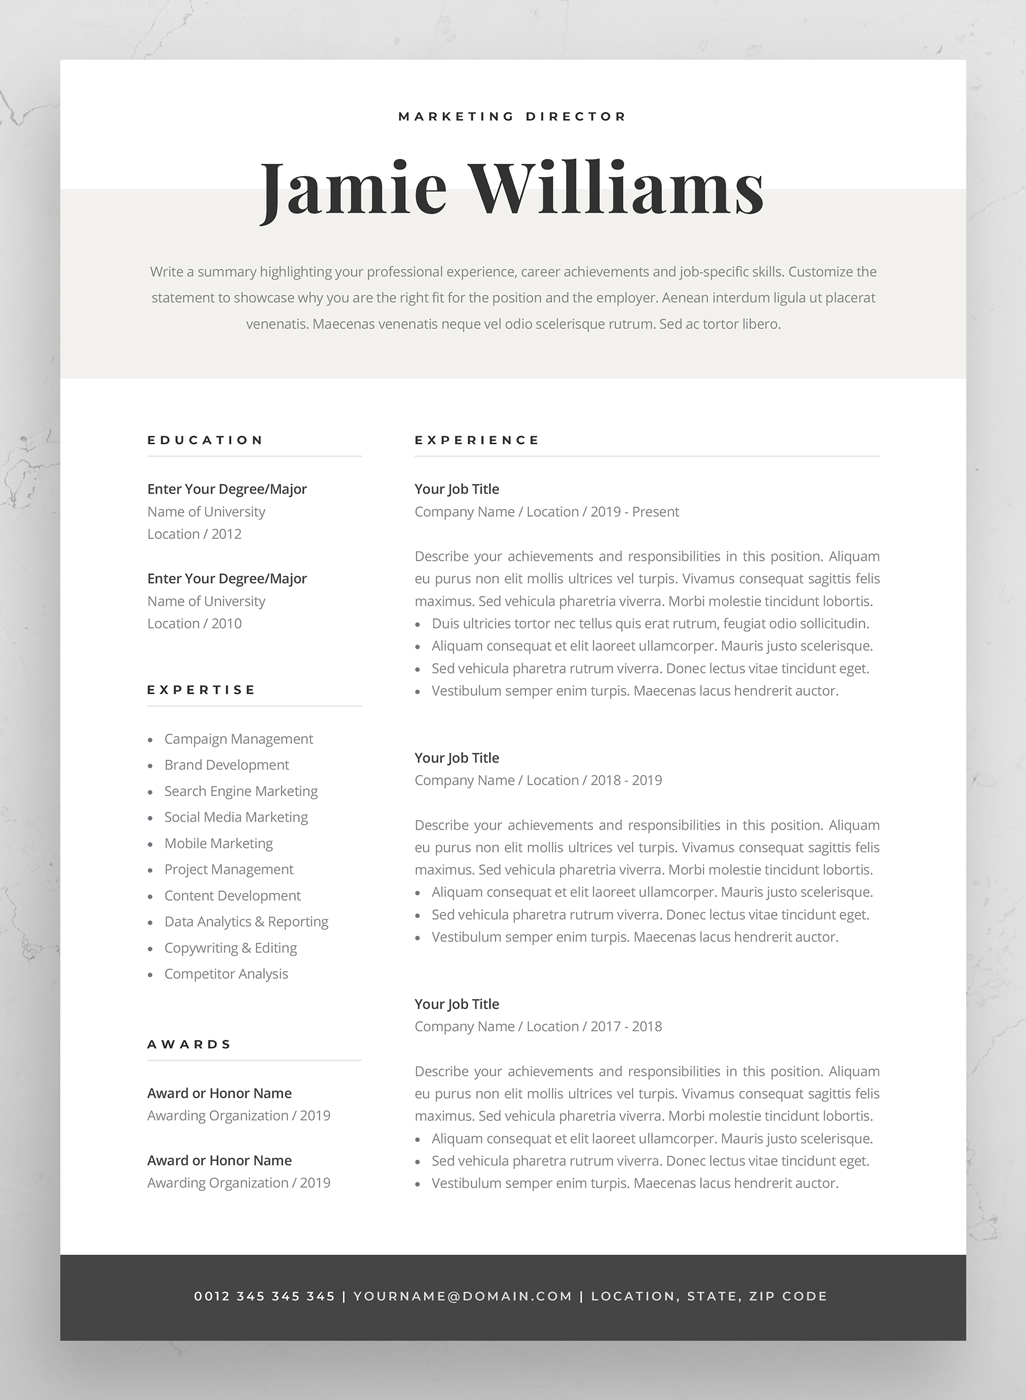 Resume Template Cover Letter Examples Of Professional Resume Template Elegant Resume Design 1 & 2 Page Cv